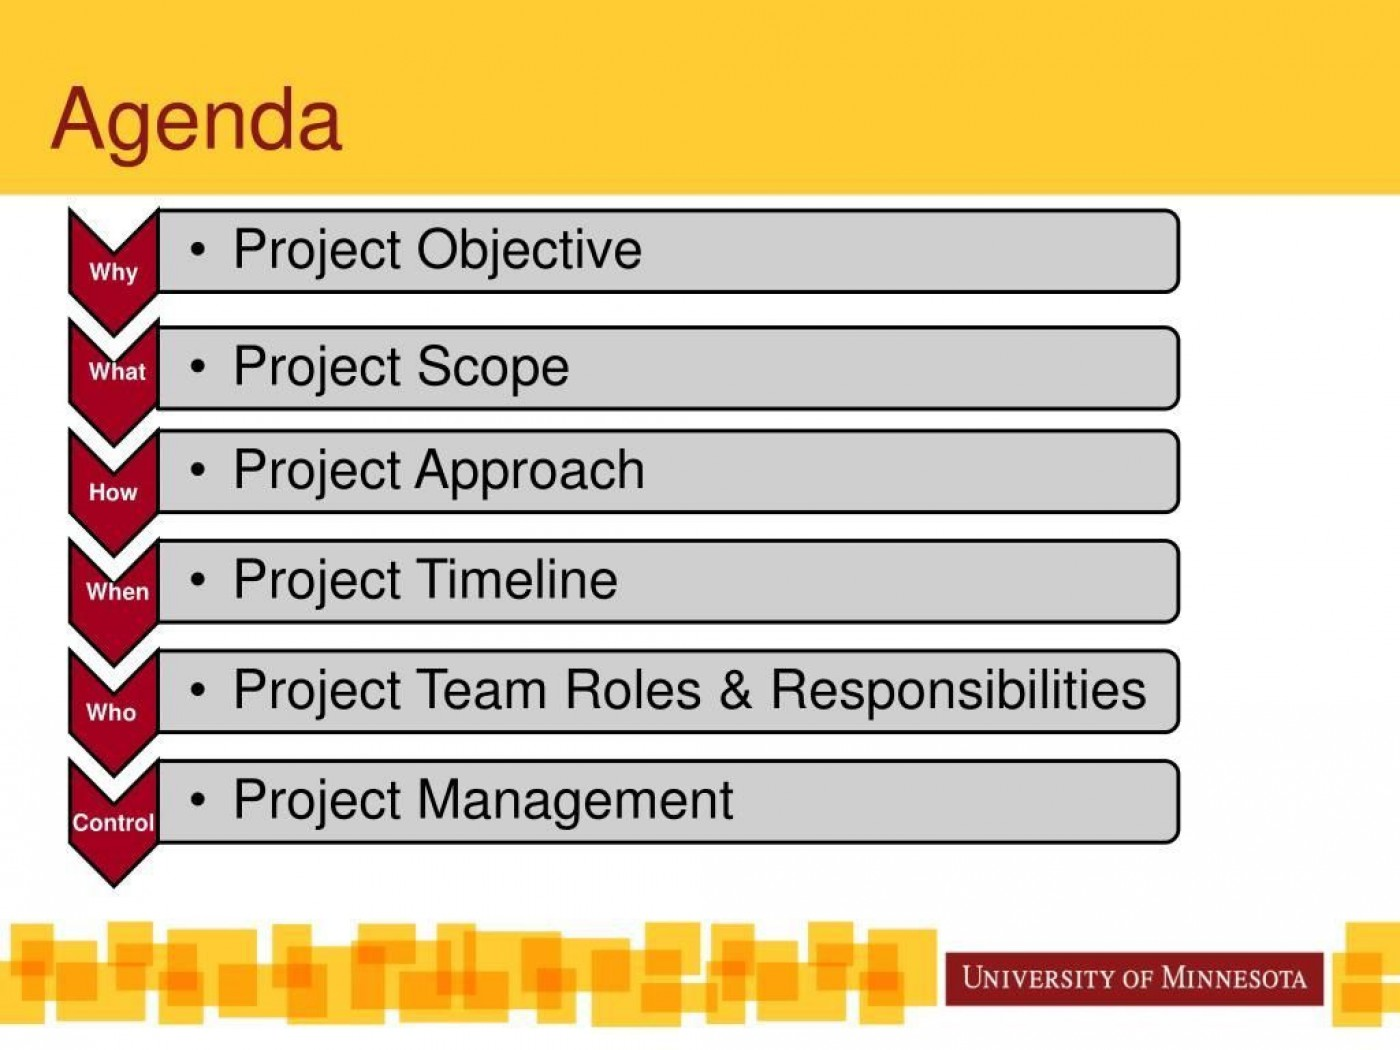 002 Unique Project Management Kickoff Meeting Agenda Template High Def 1400